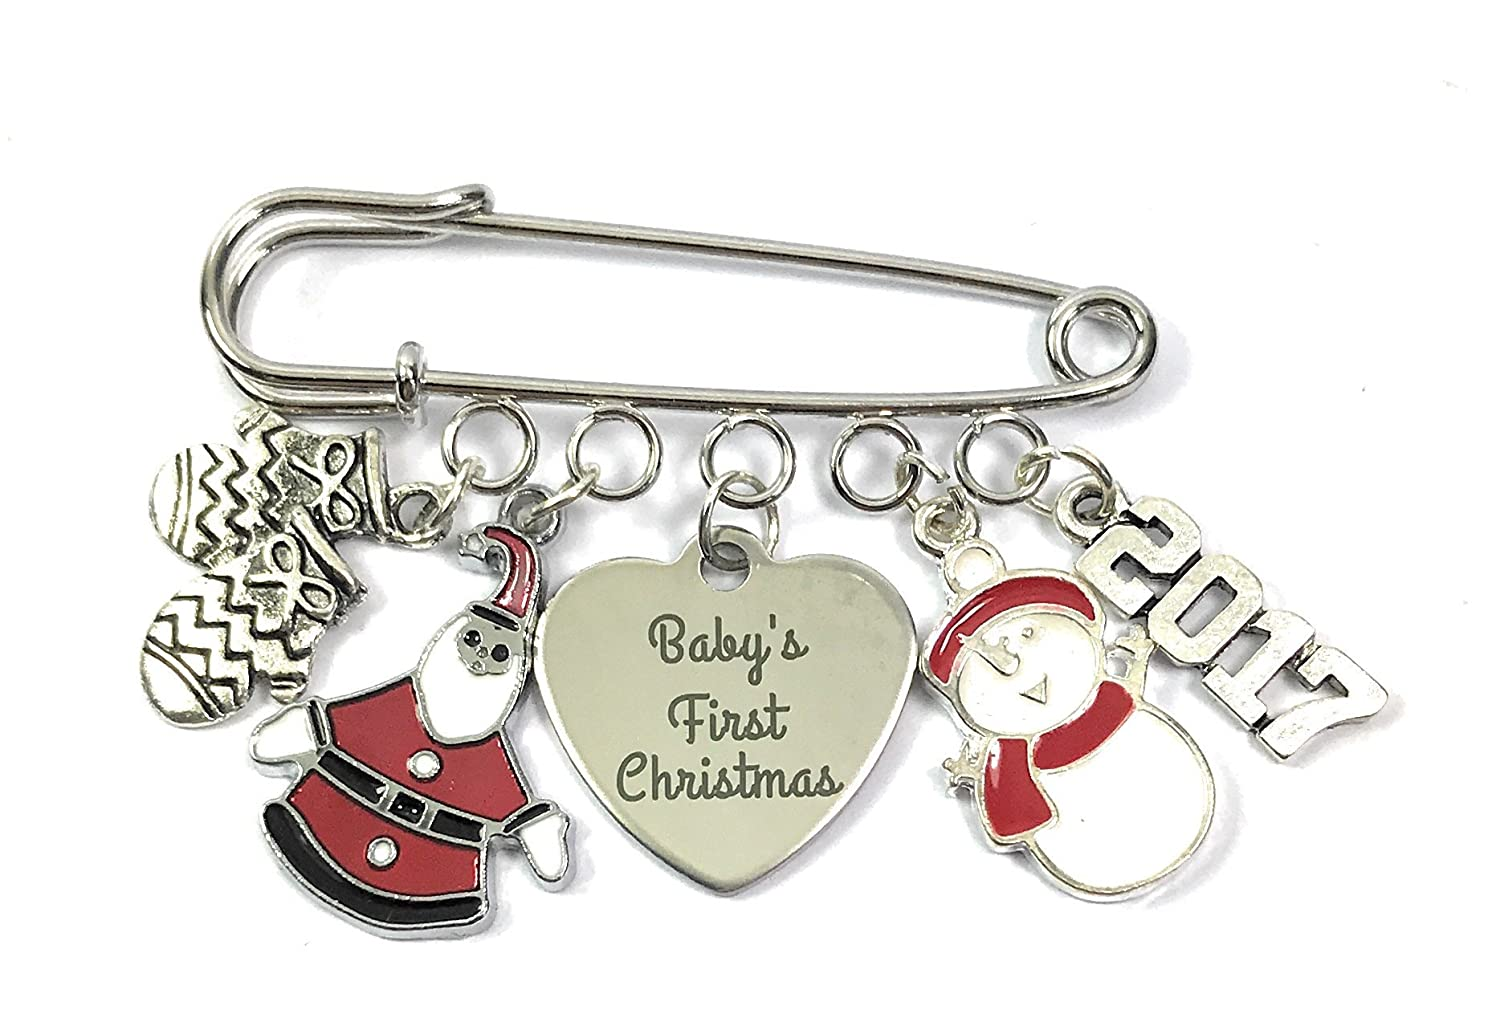 Baby's First Christmas Nappy Safety Pin Keepsake Charms with Letter Blocks, Snowman, Santa and Gloves Charms comes in an Organza Gift Bag Handmade by Libby's Market Place Libby's Market Place